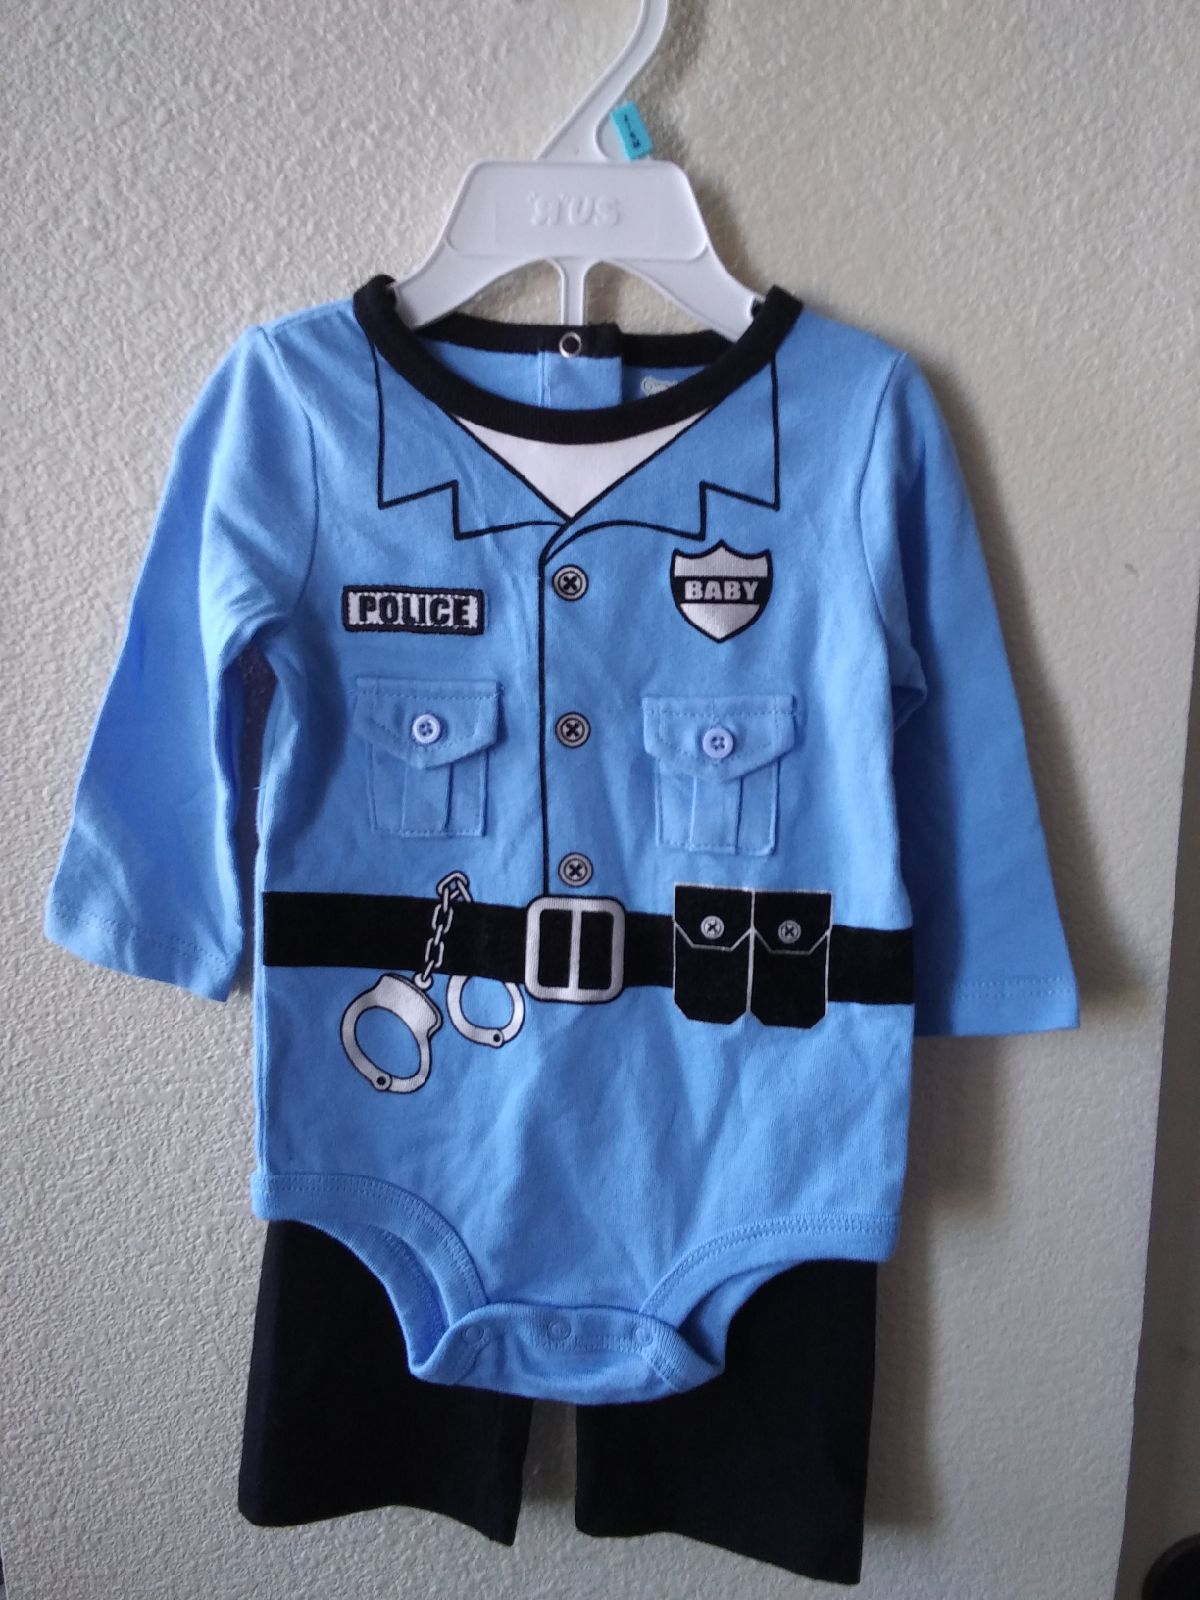 Baby police costume